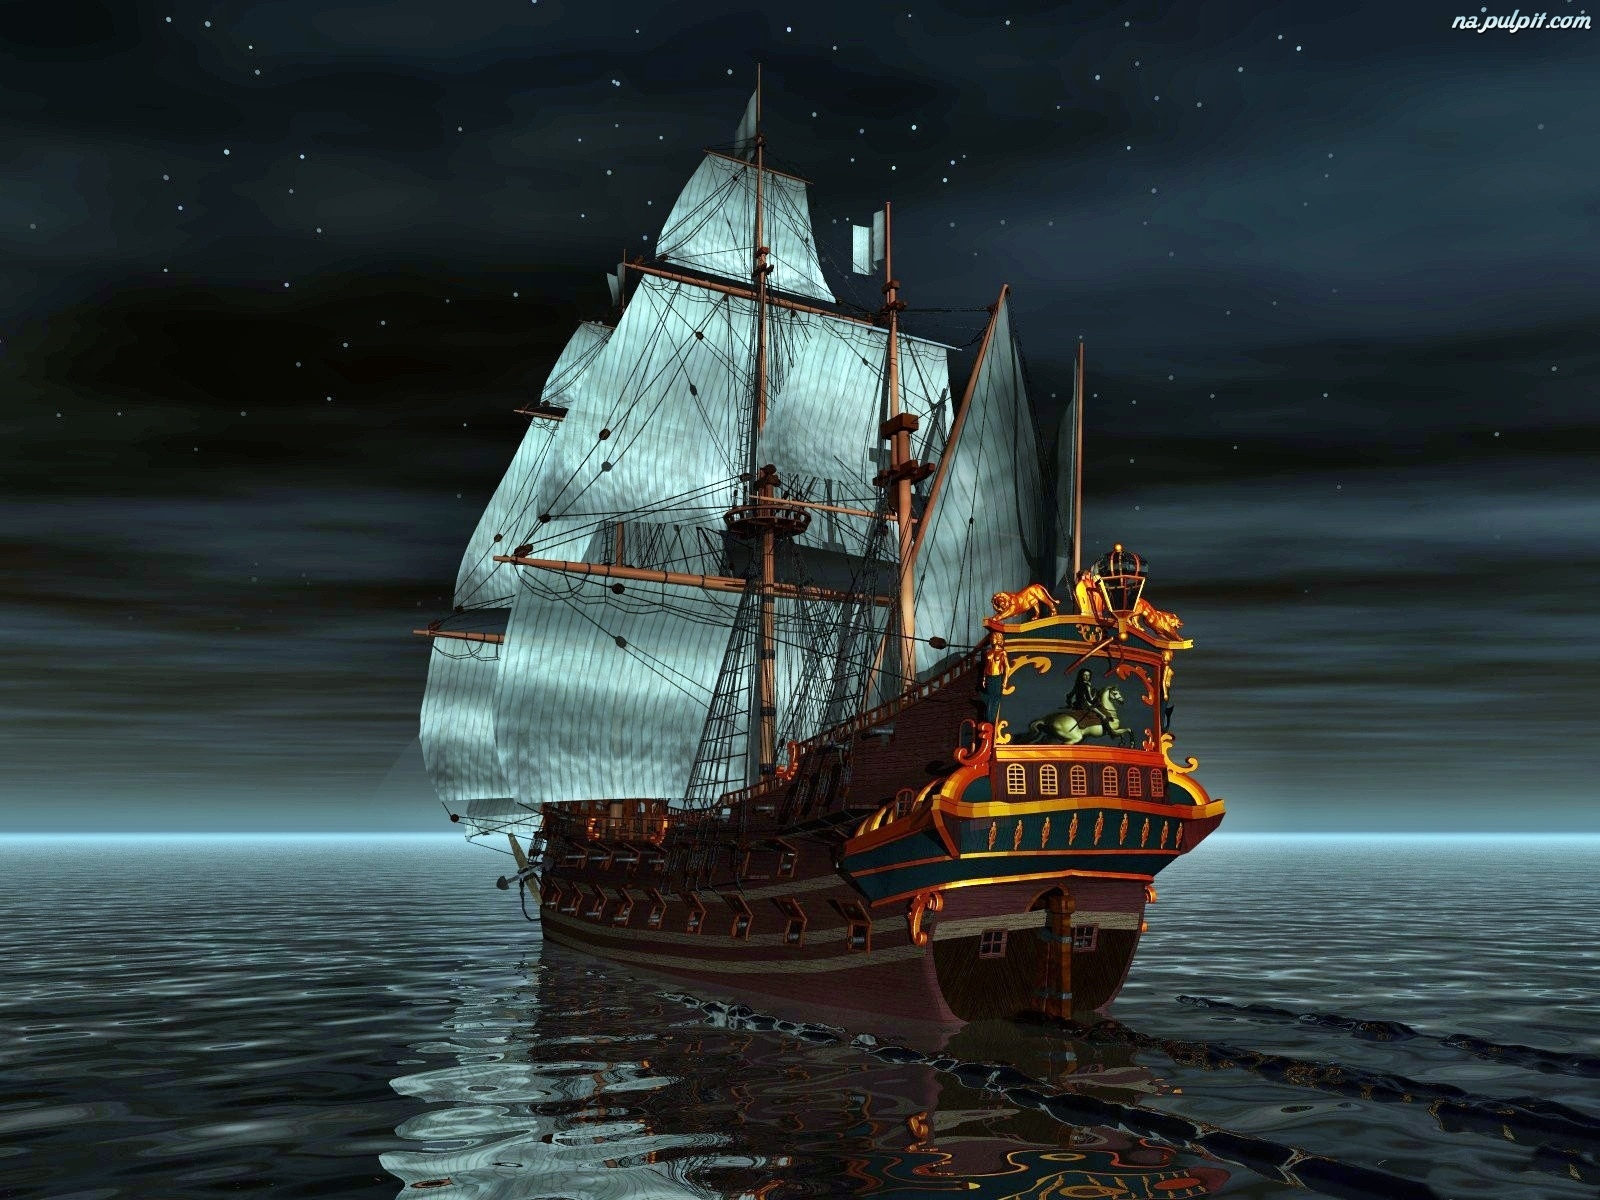 pirate wallpaper 1600x900 - photo #48